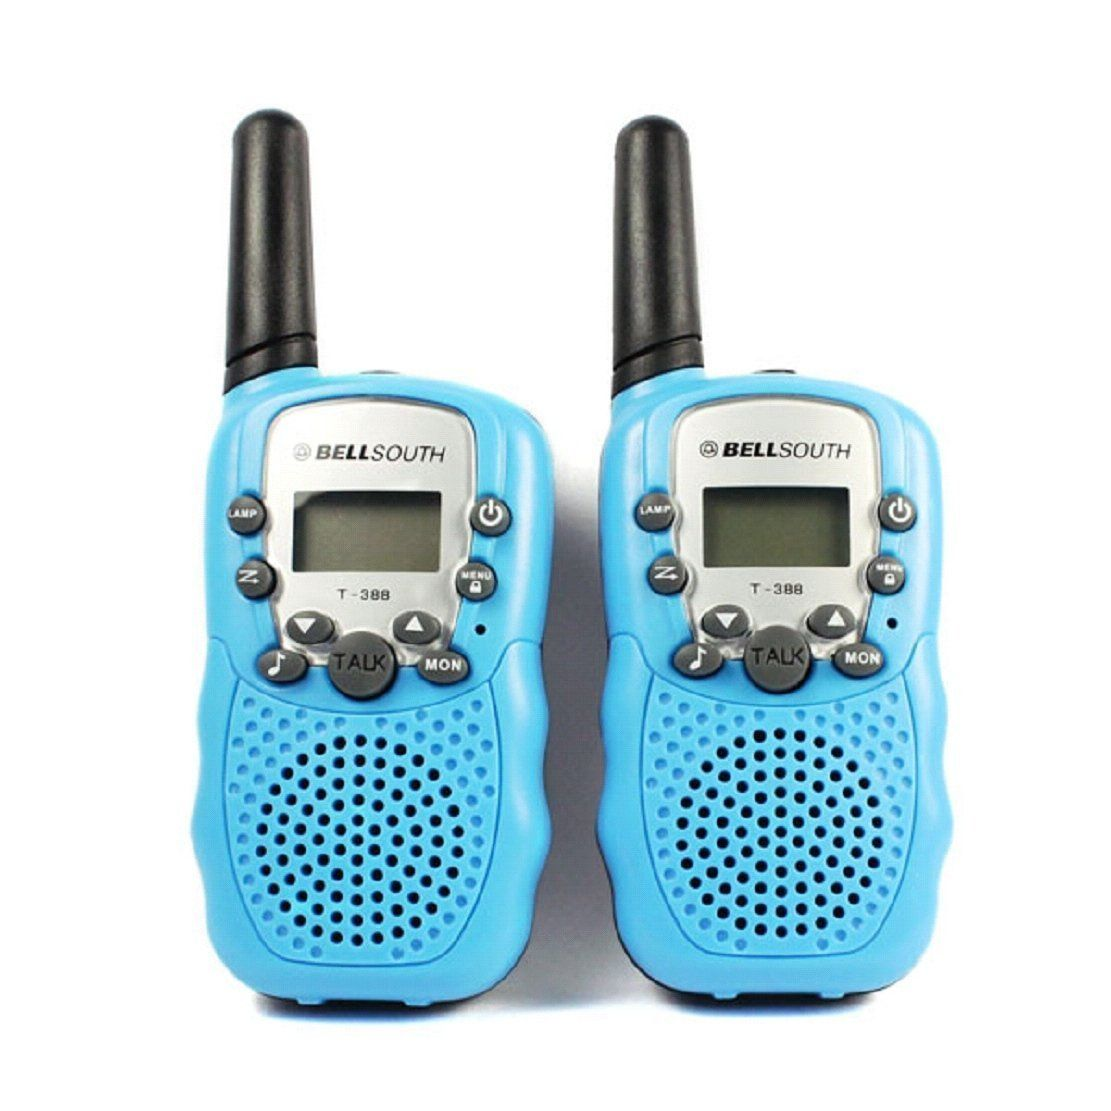 BELLSOUTH T388 2 Piece T-388 3-5KM 22 FRS and GMRS UHF Radio